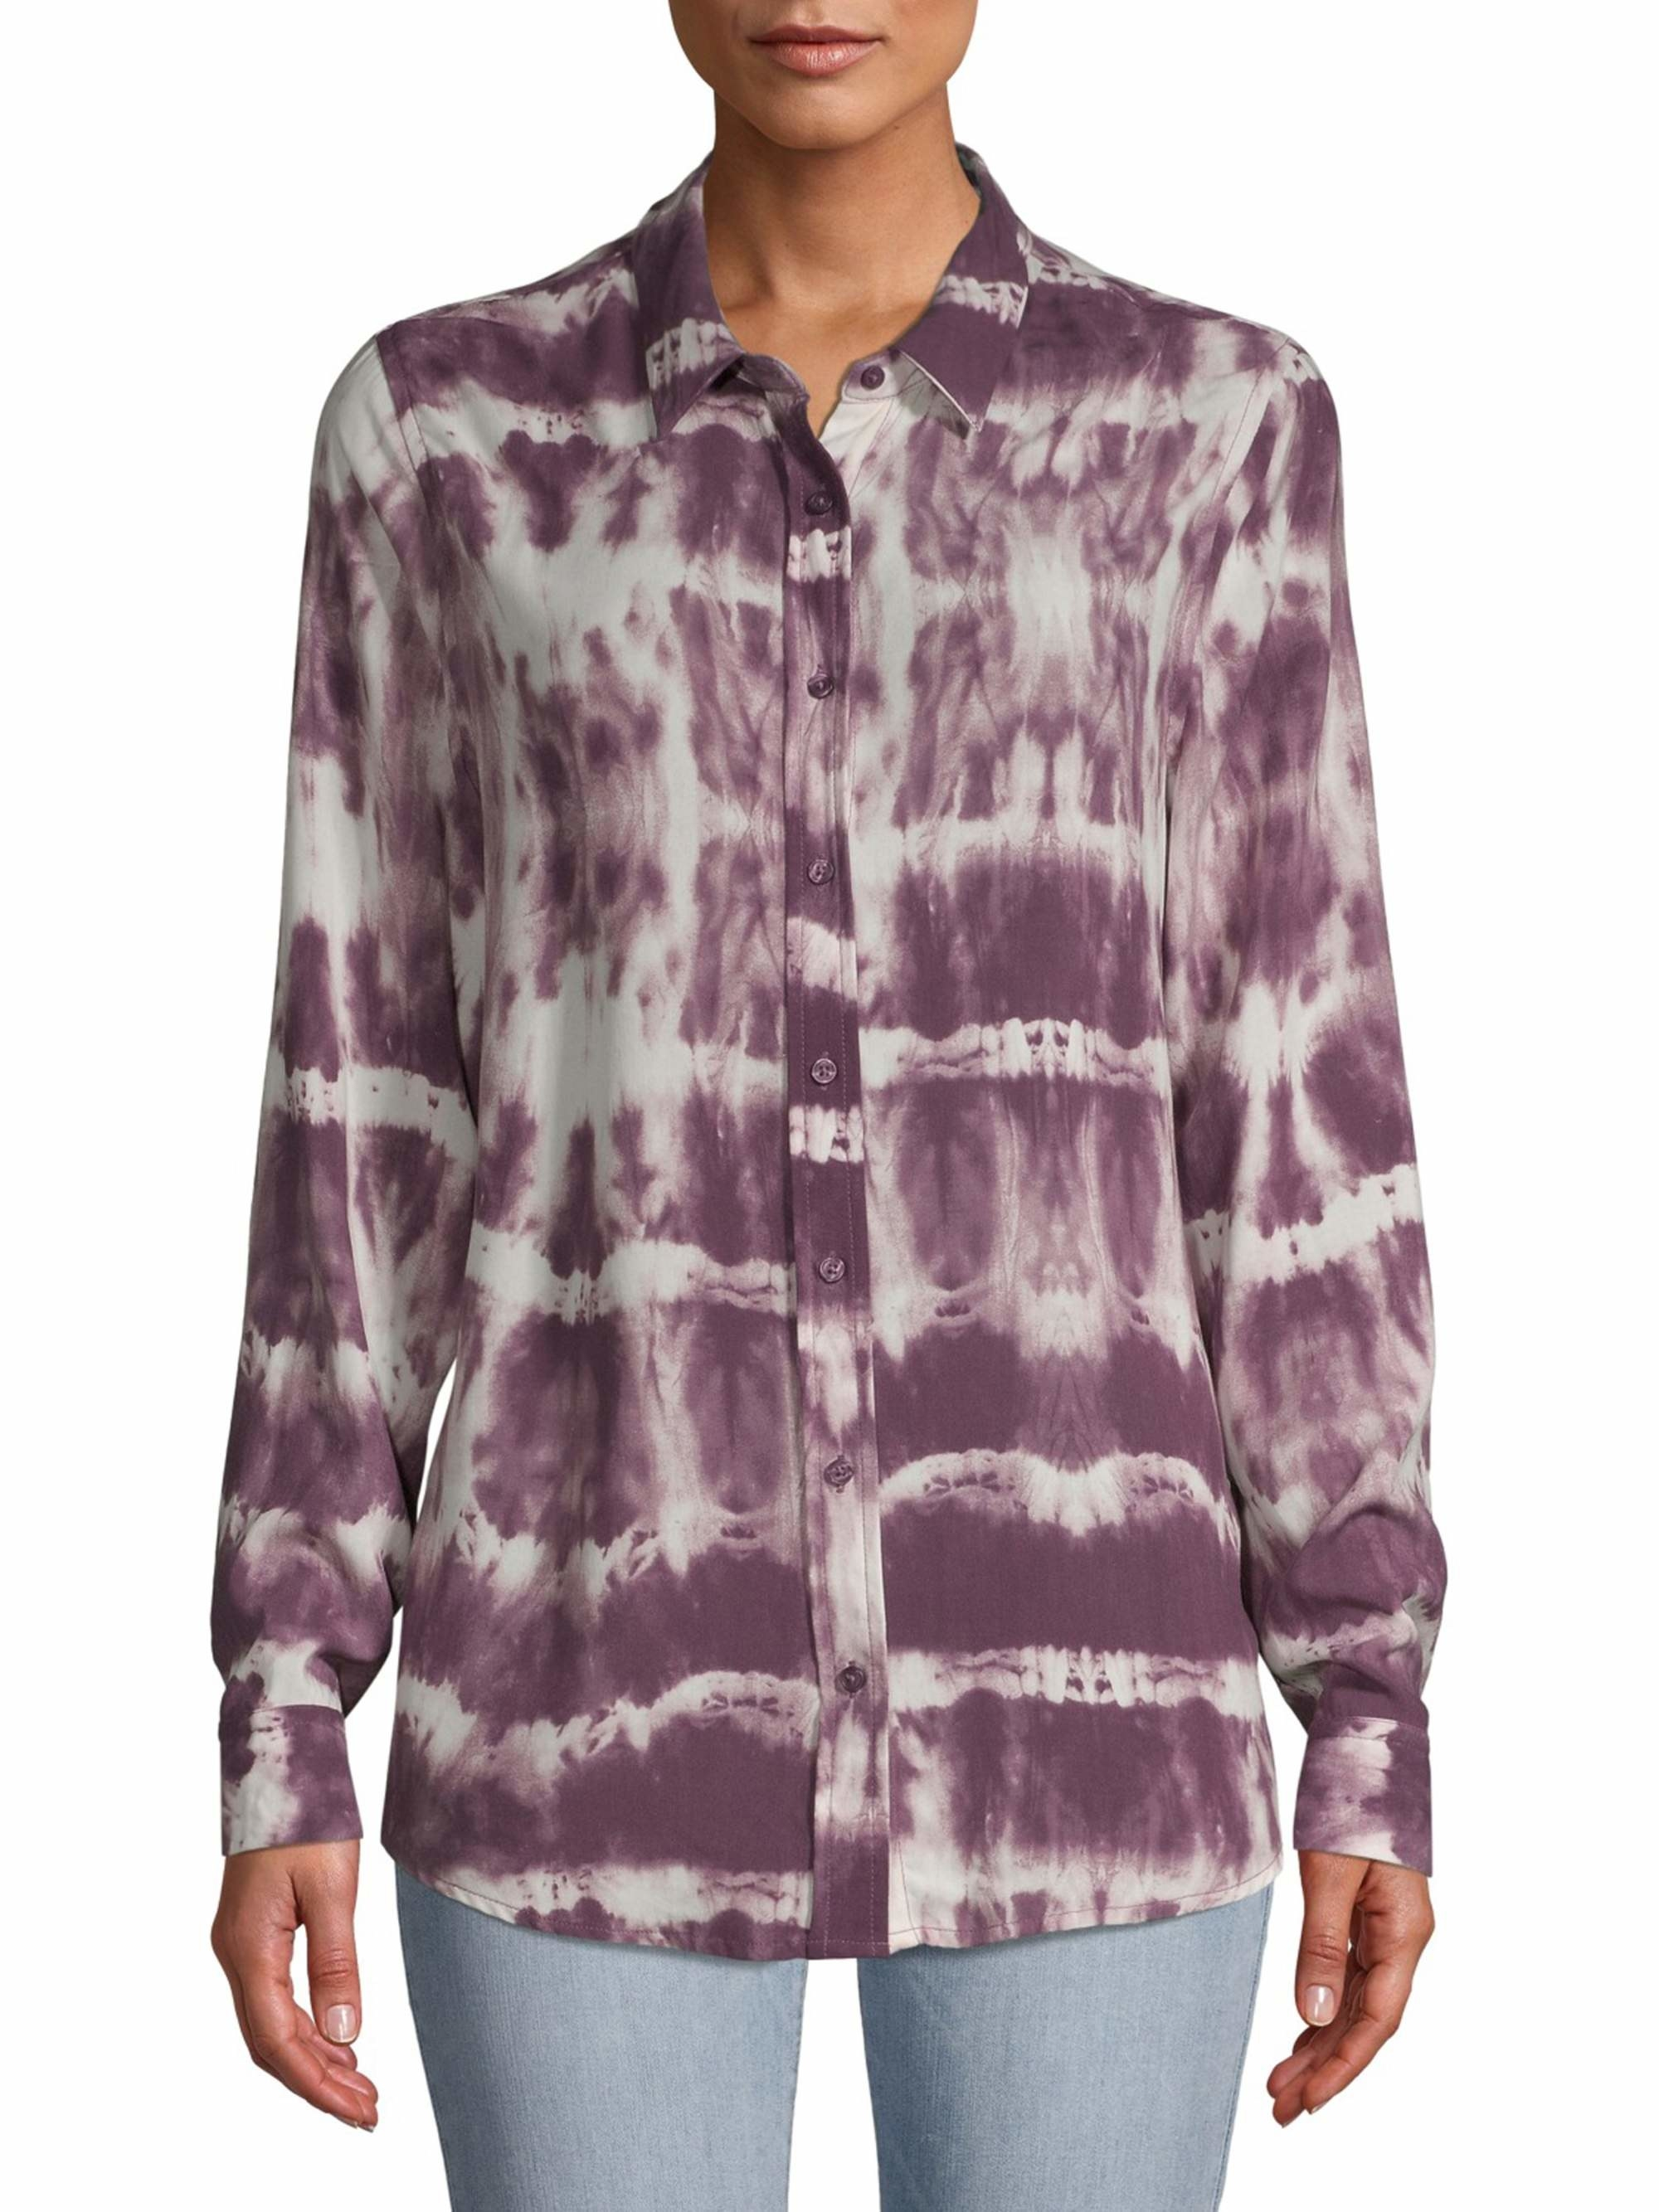 The purple tie dye blouse